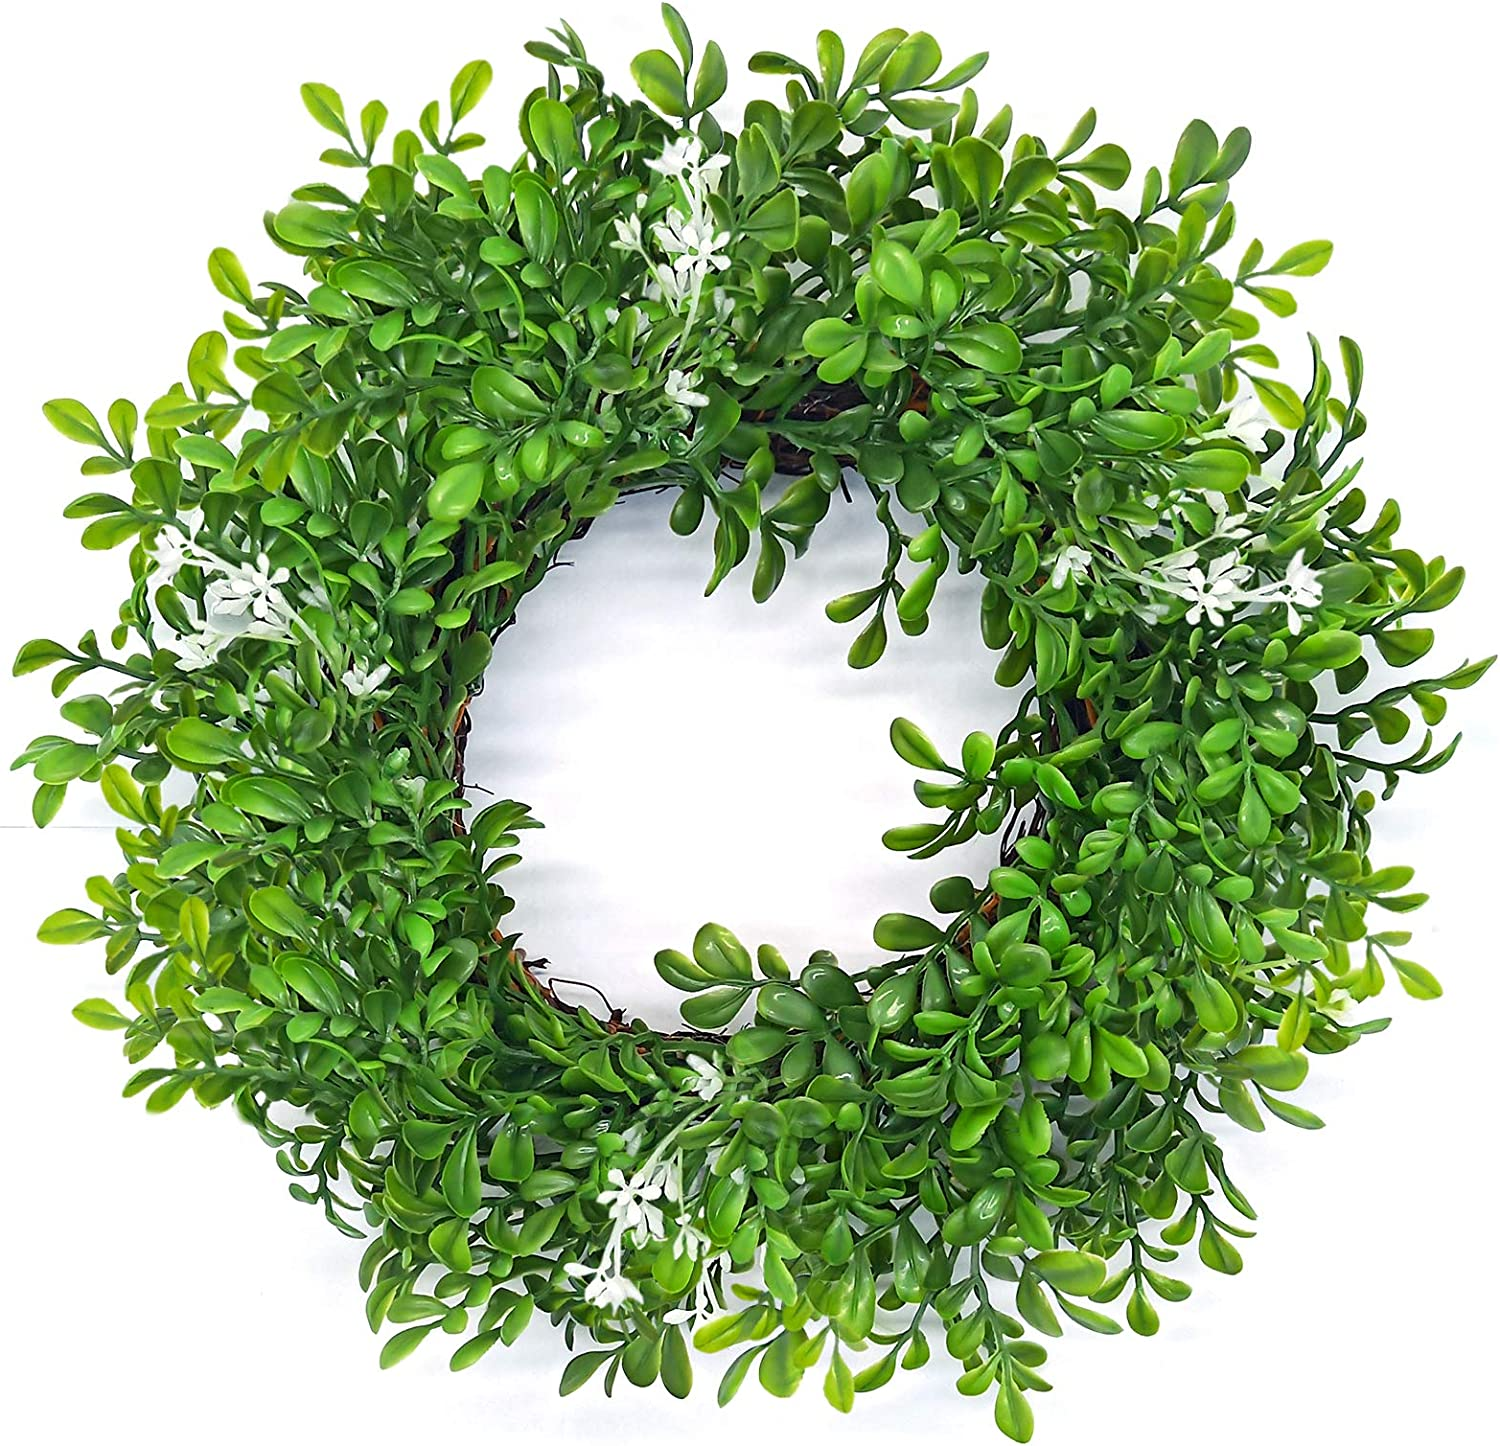 13 inch Boxwood Wreath Round Artificial Wreath Green Leaves Wreath for Door Wall Window Decoration or Candle Ring